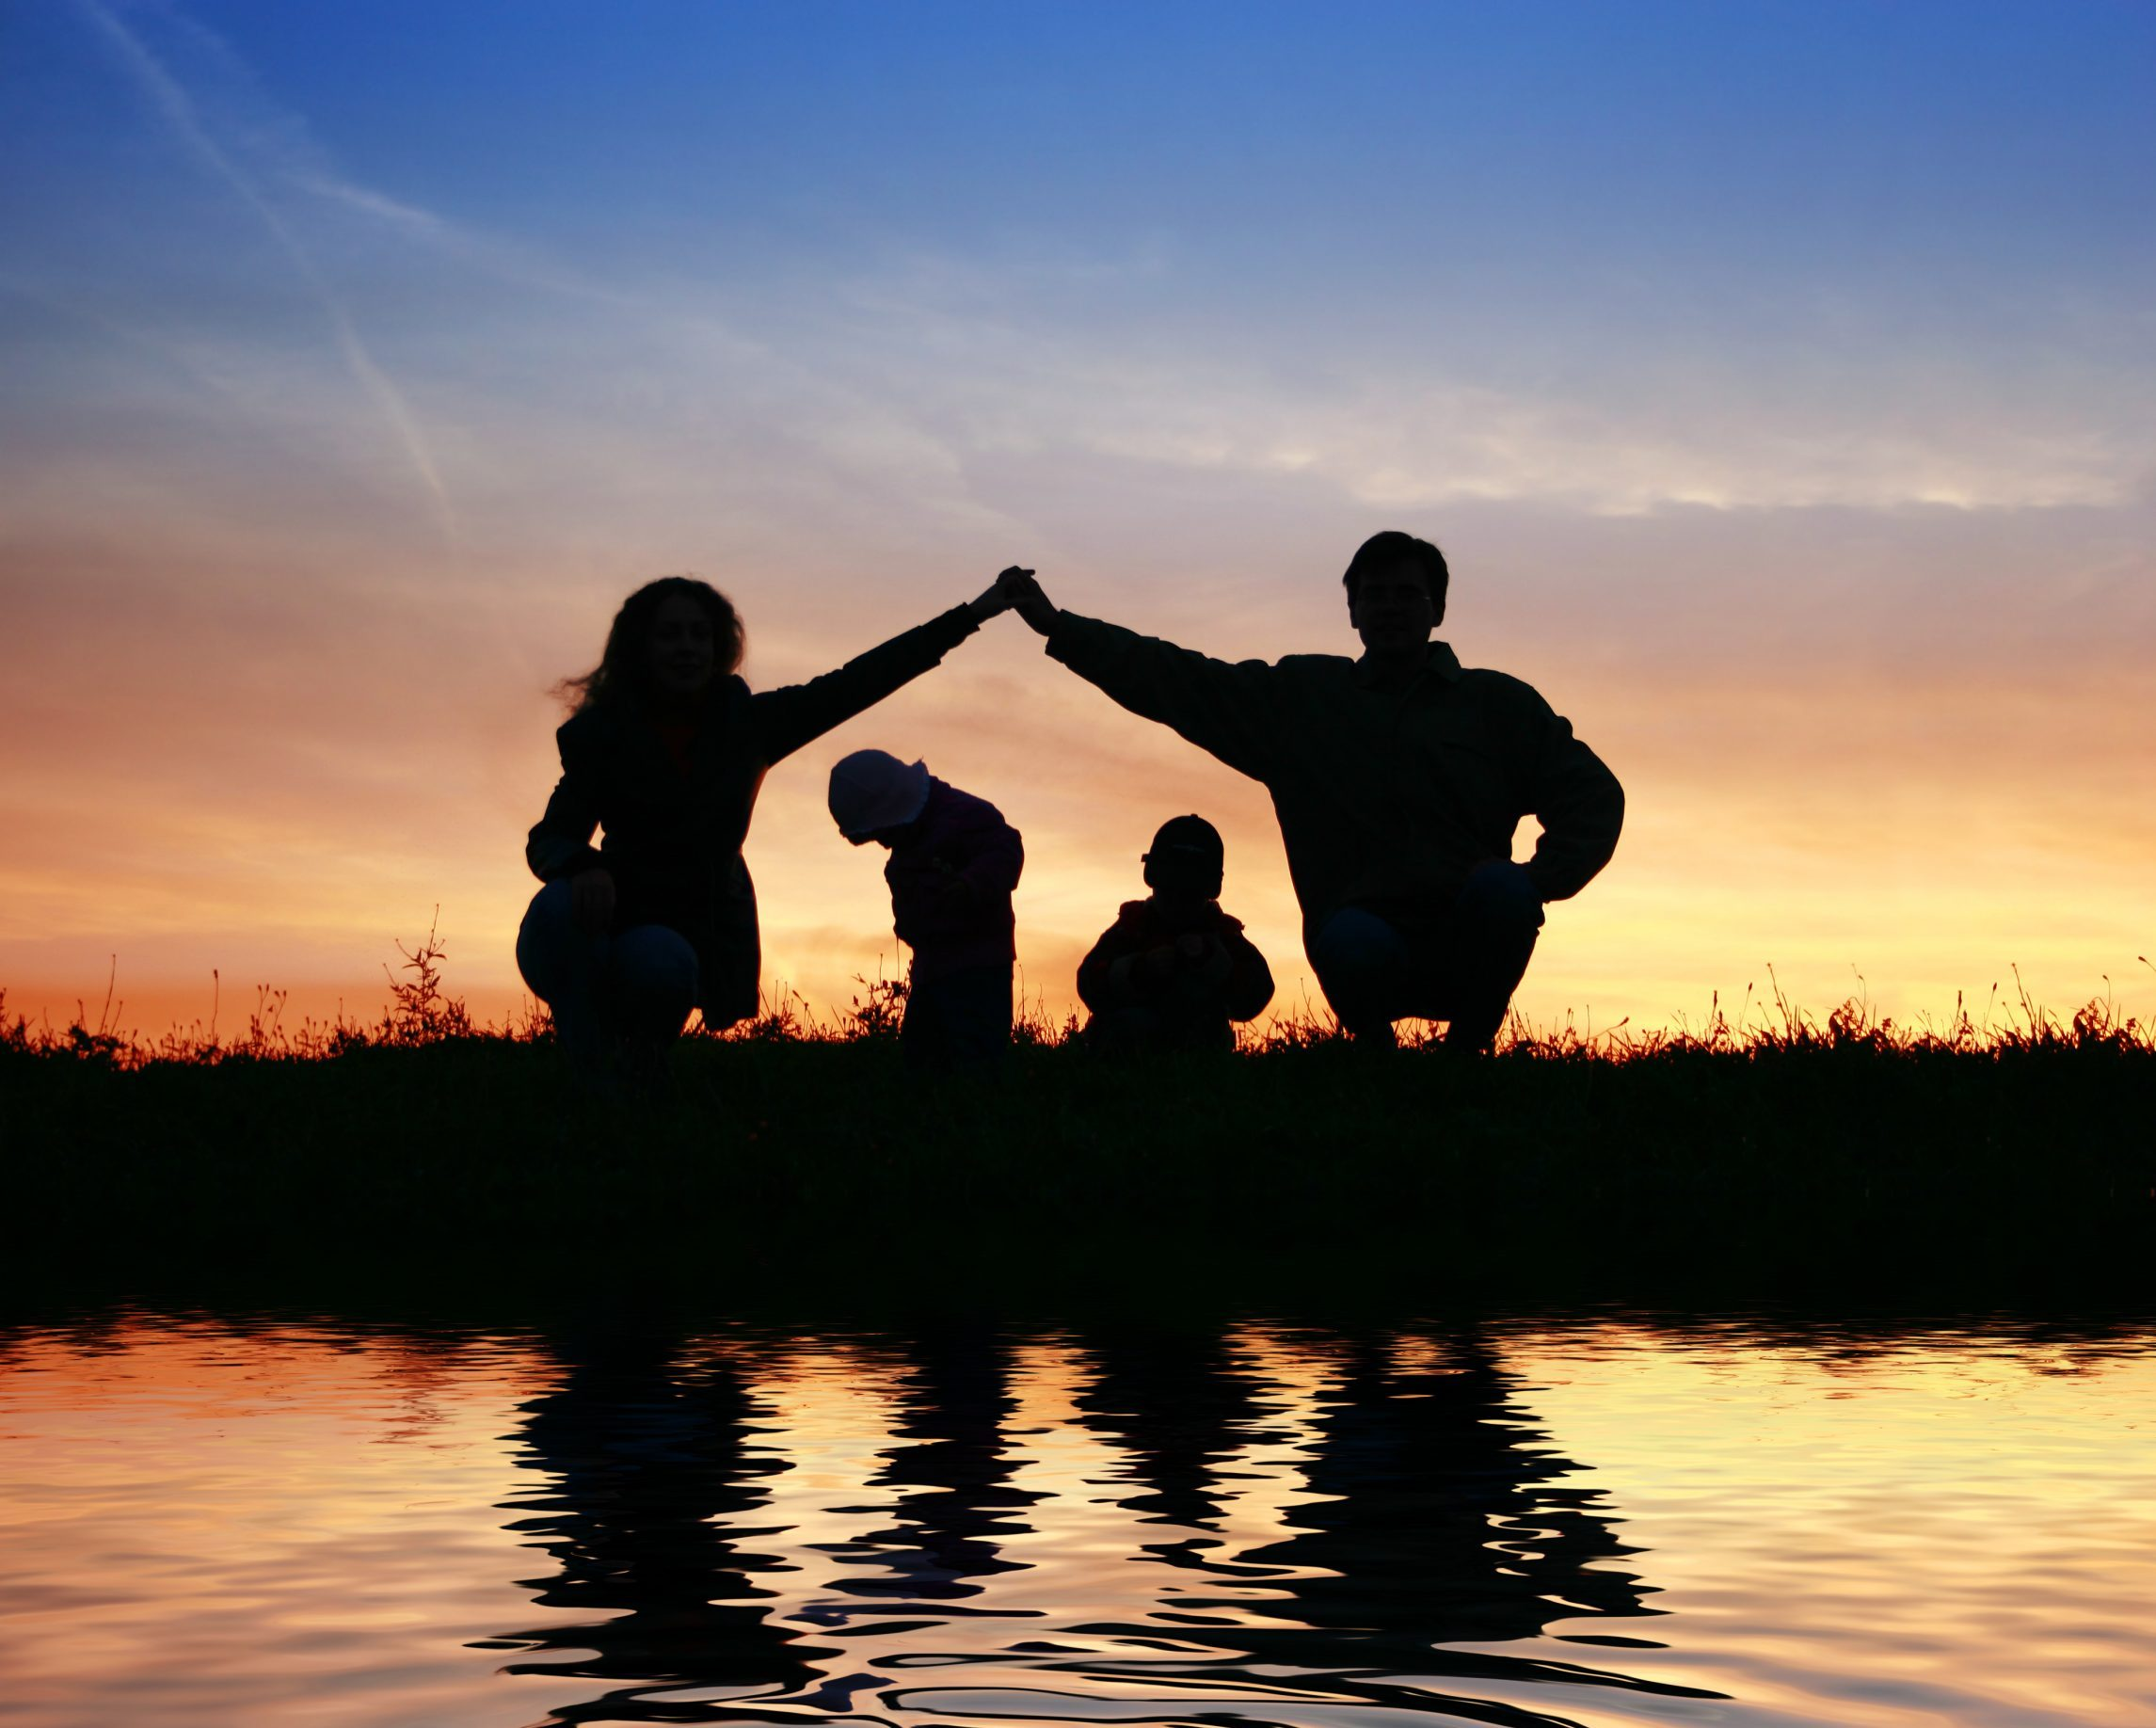 A happy adoptive family successfully navigated the adoption law landscape in Rochester NY with the help of an adoption lawyer